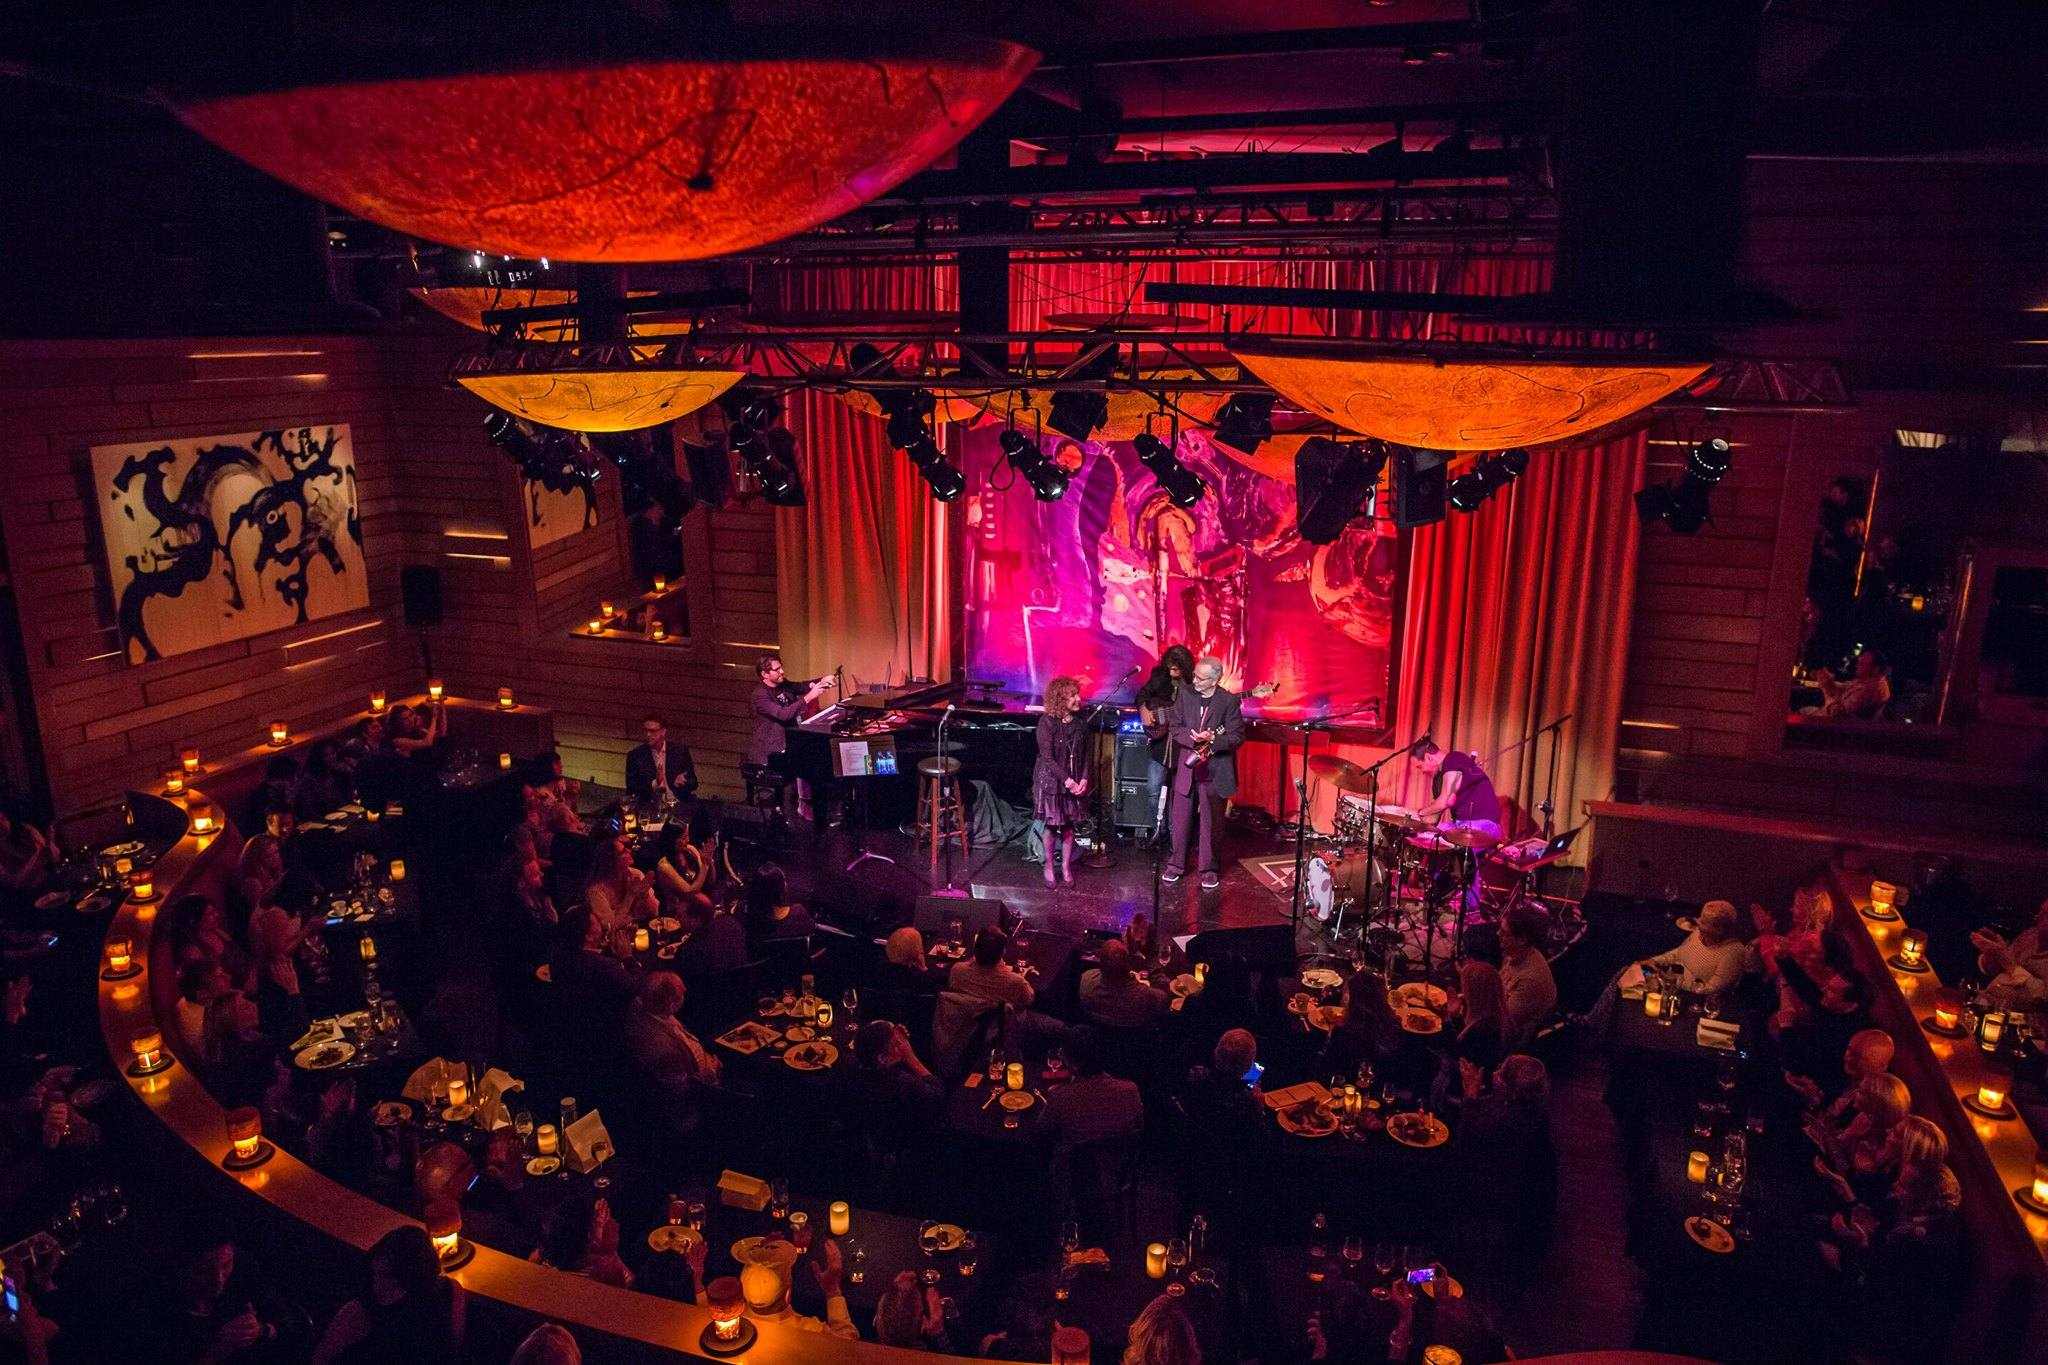 Herb Alpert and Lani Hall on stage at Vibrato Grill in Bel-Air